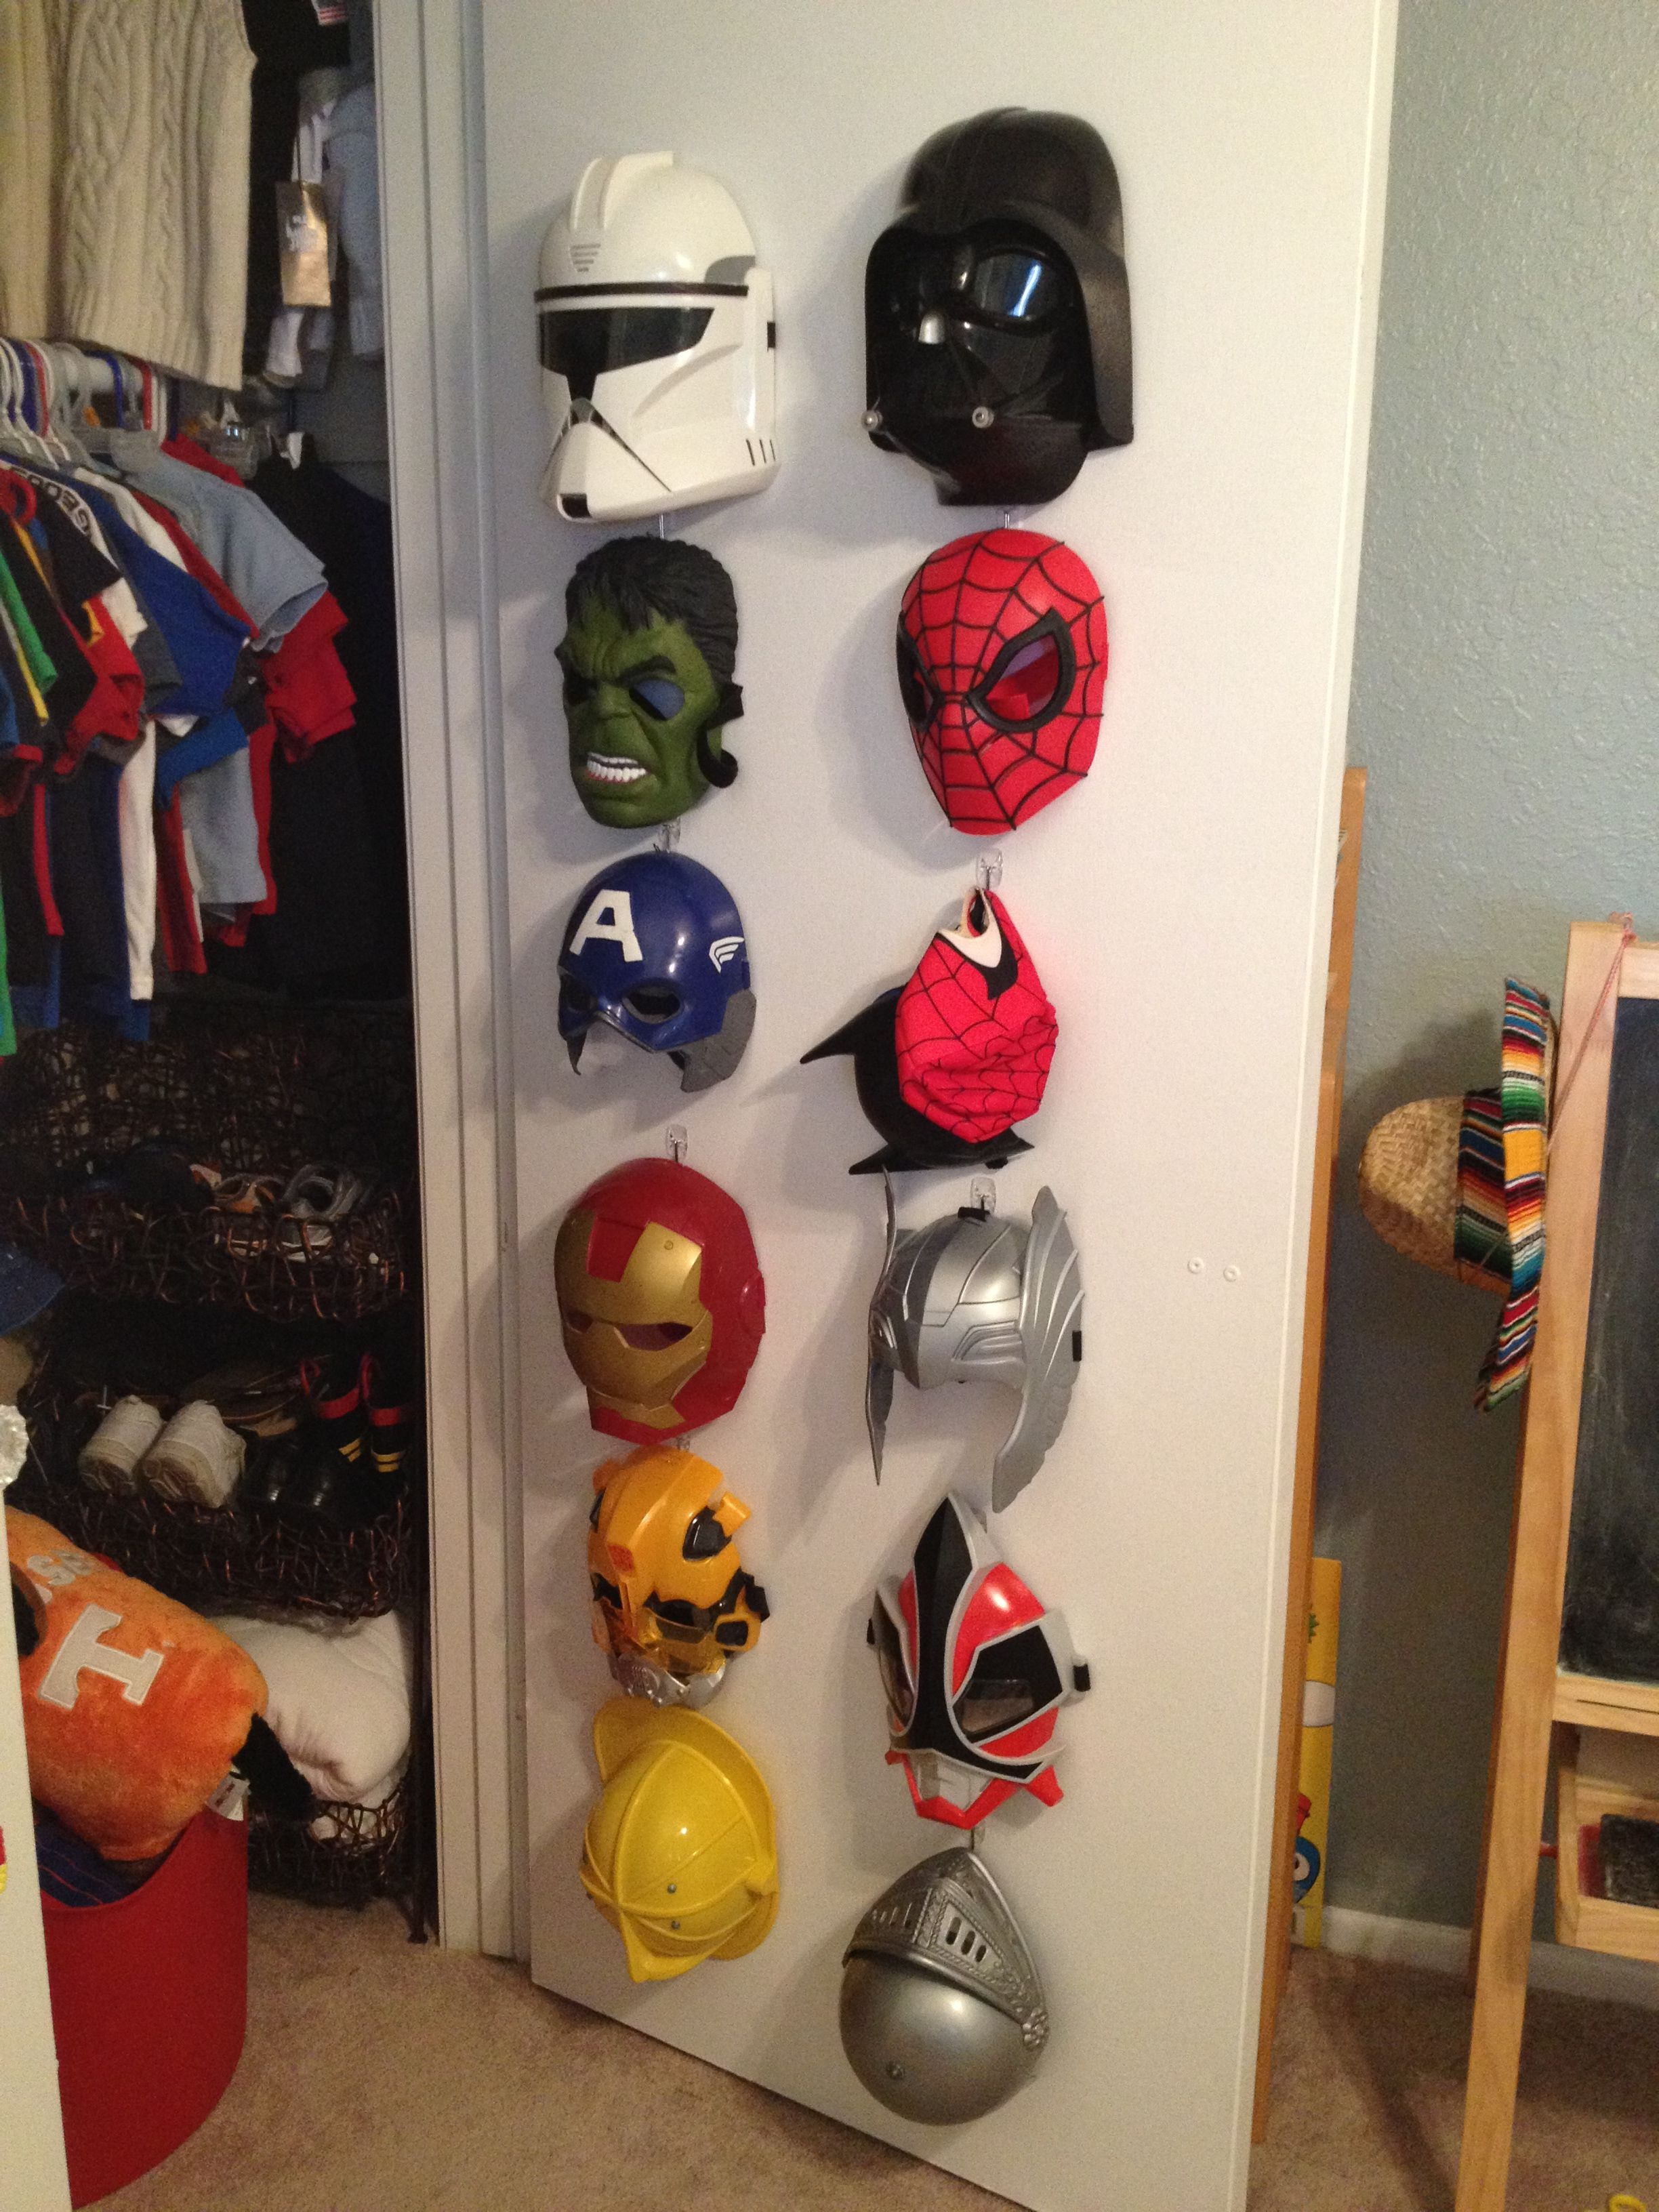 Boys Superhero Bedroom: When They Are Not Busy Fighting Crime And Saving The World